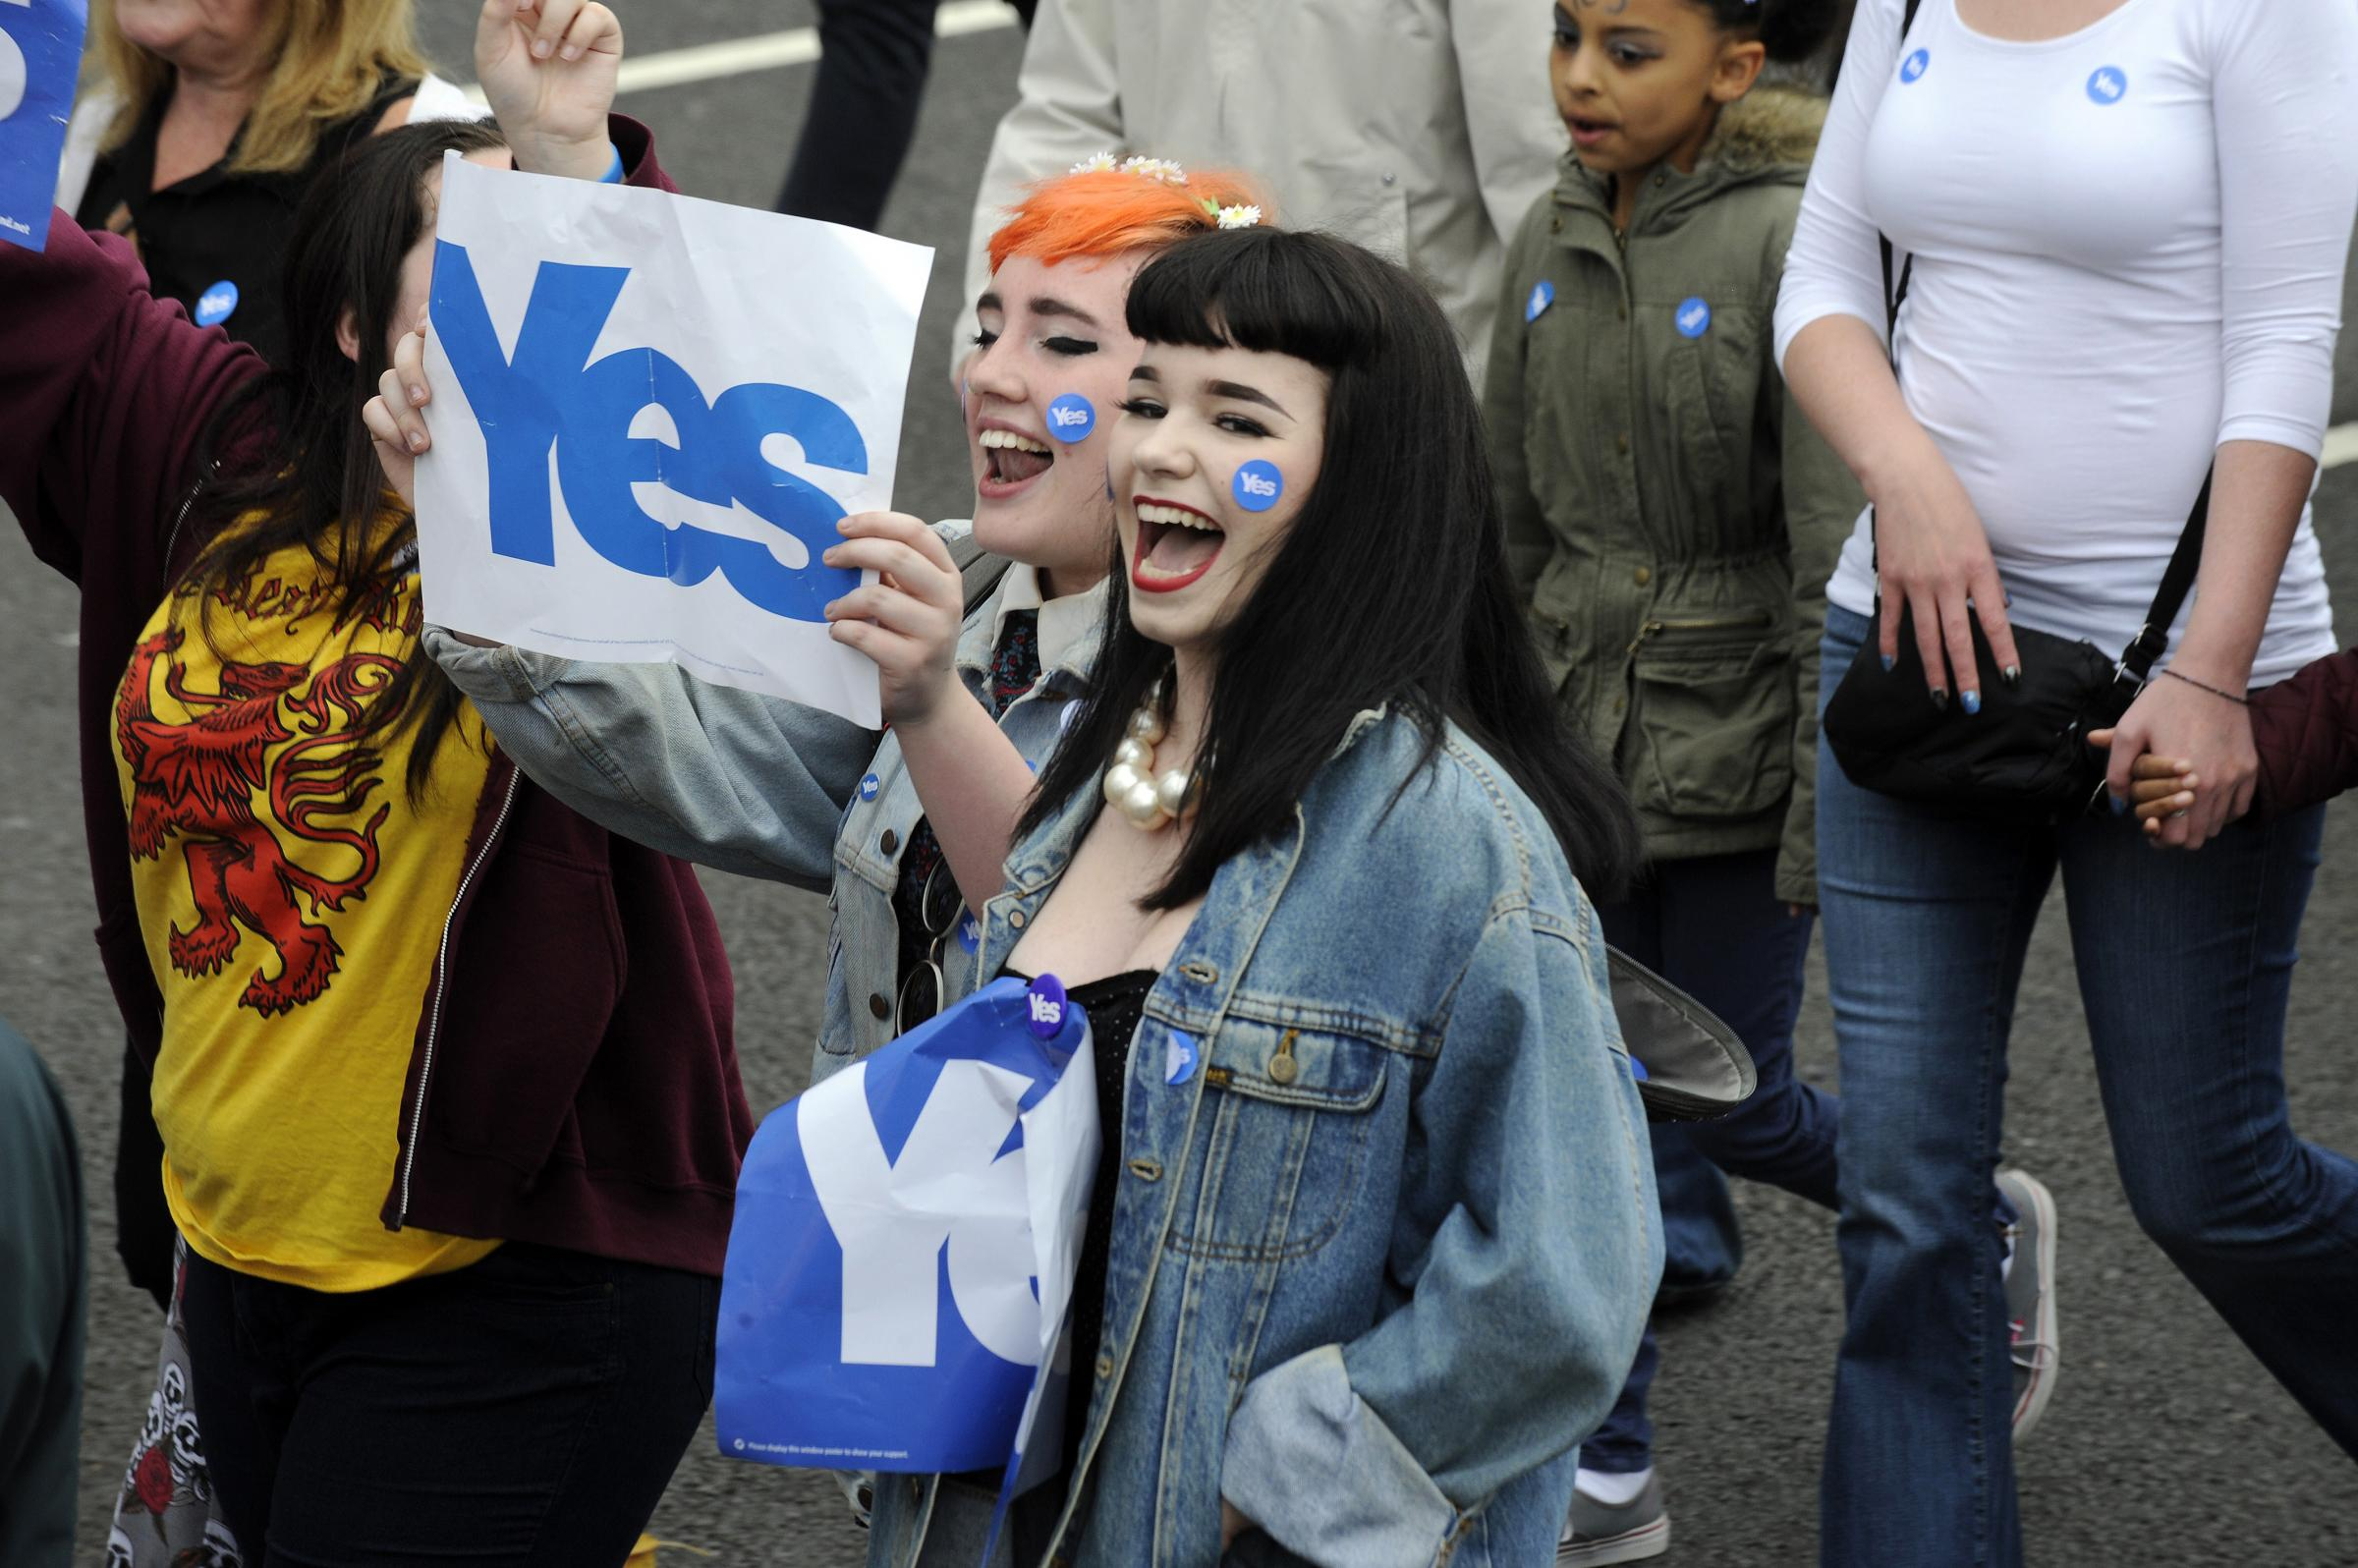 Scots of all ages should be involved